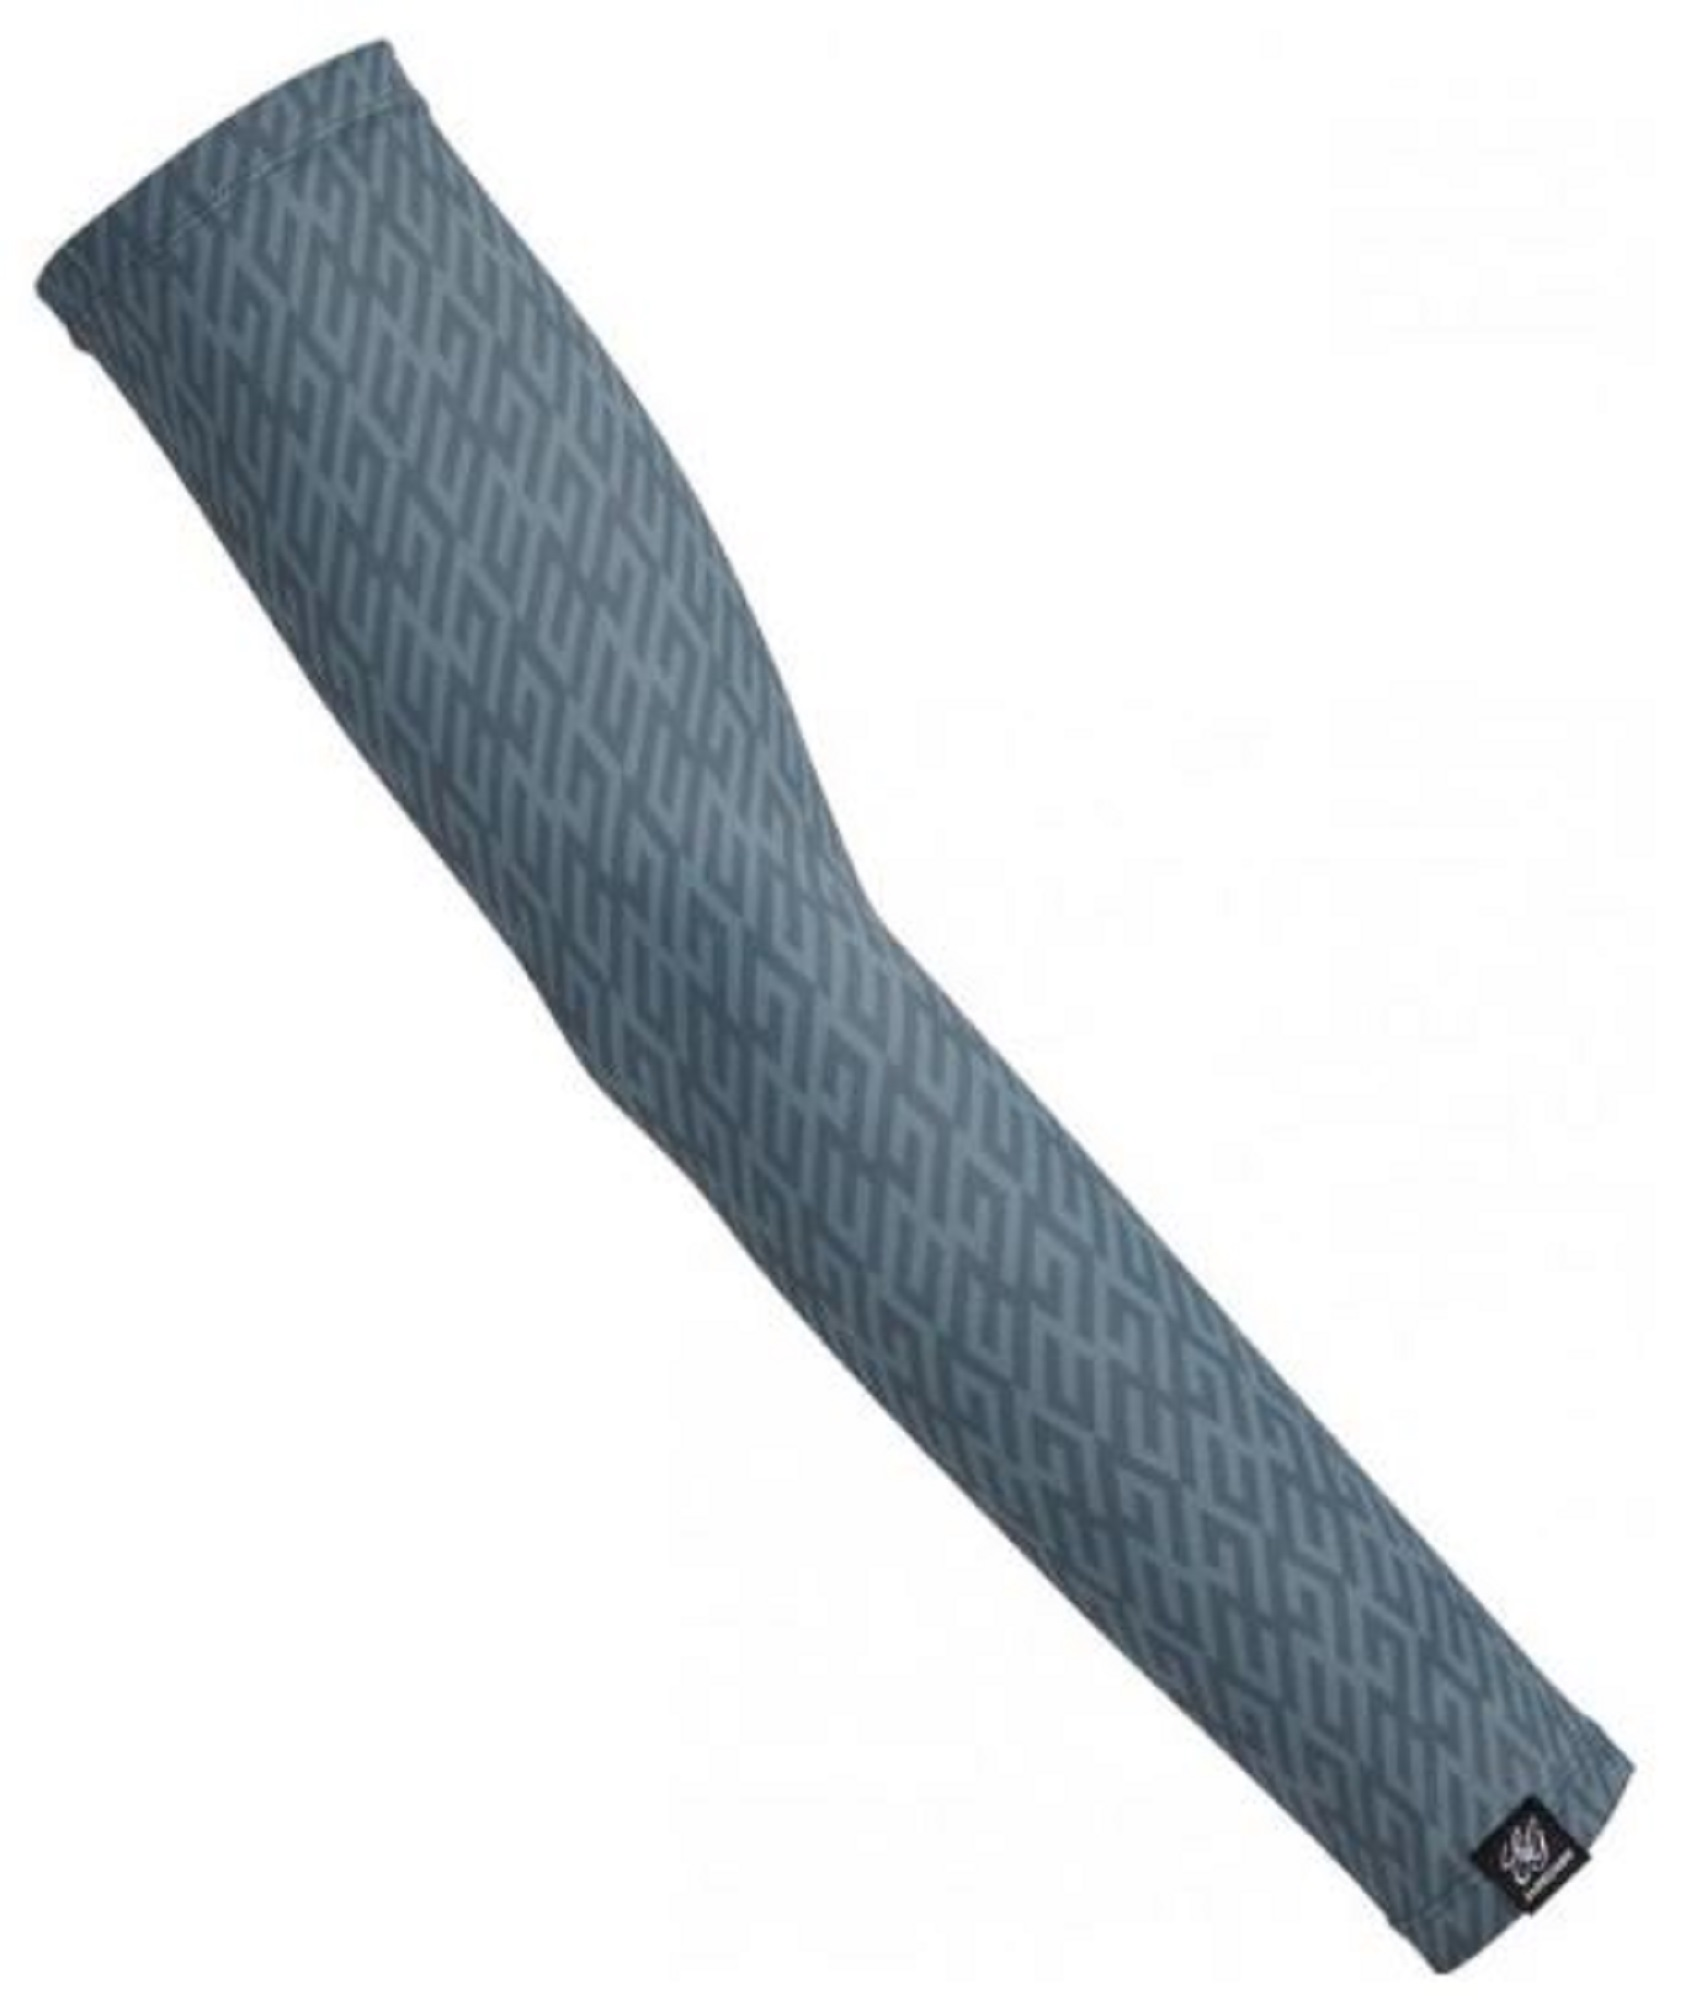 Evergreen Arm Sleeve Cover Size M EG Gray (2193)